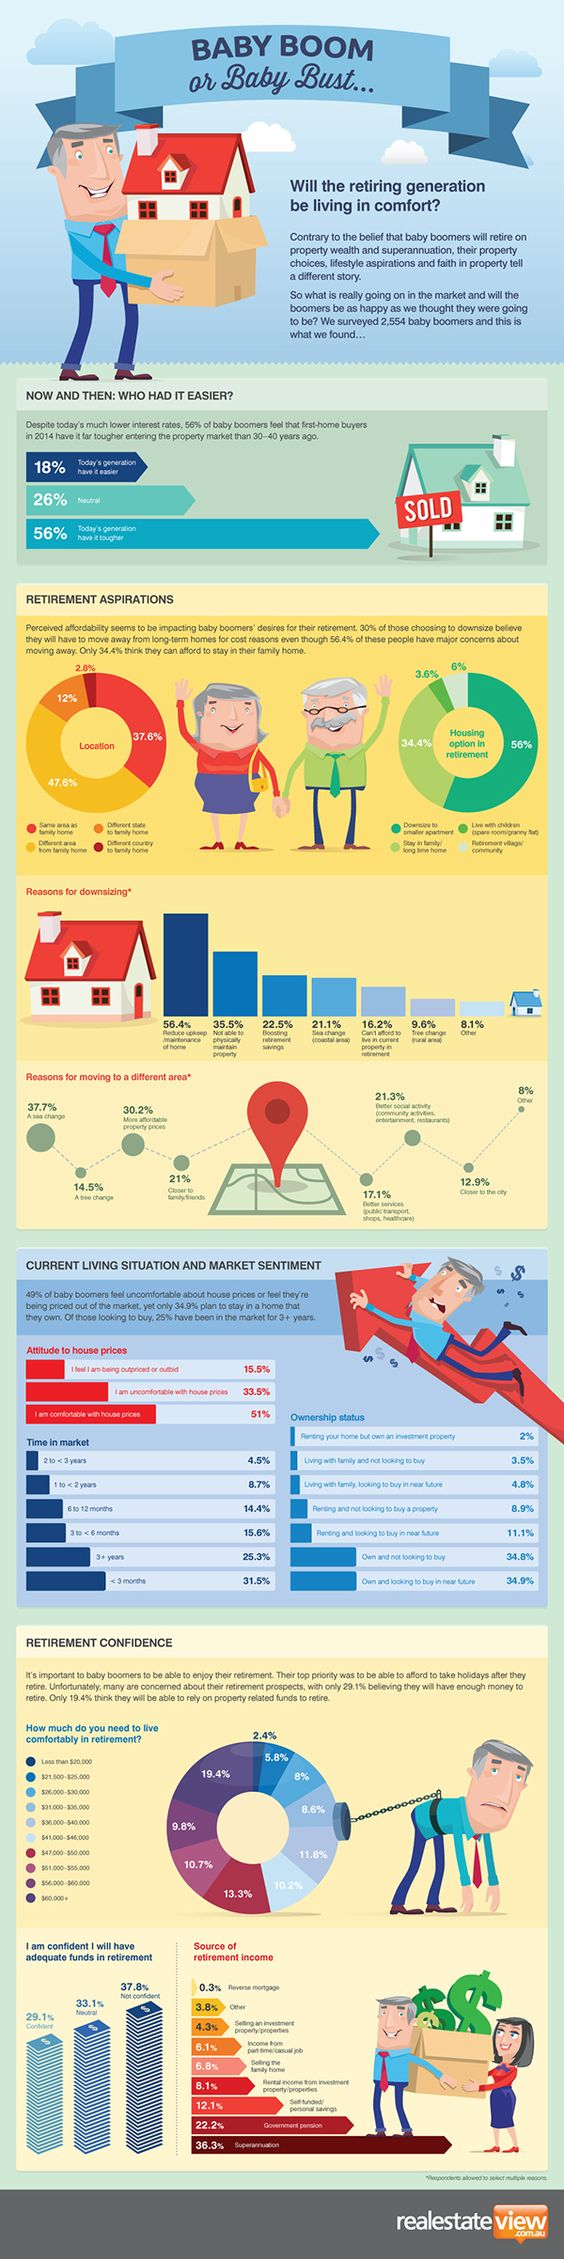 Baby Boomer Housing & Lifestyle #Infographic #infografía